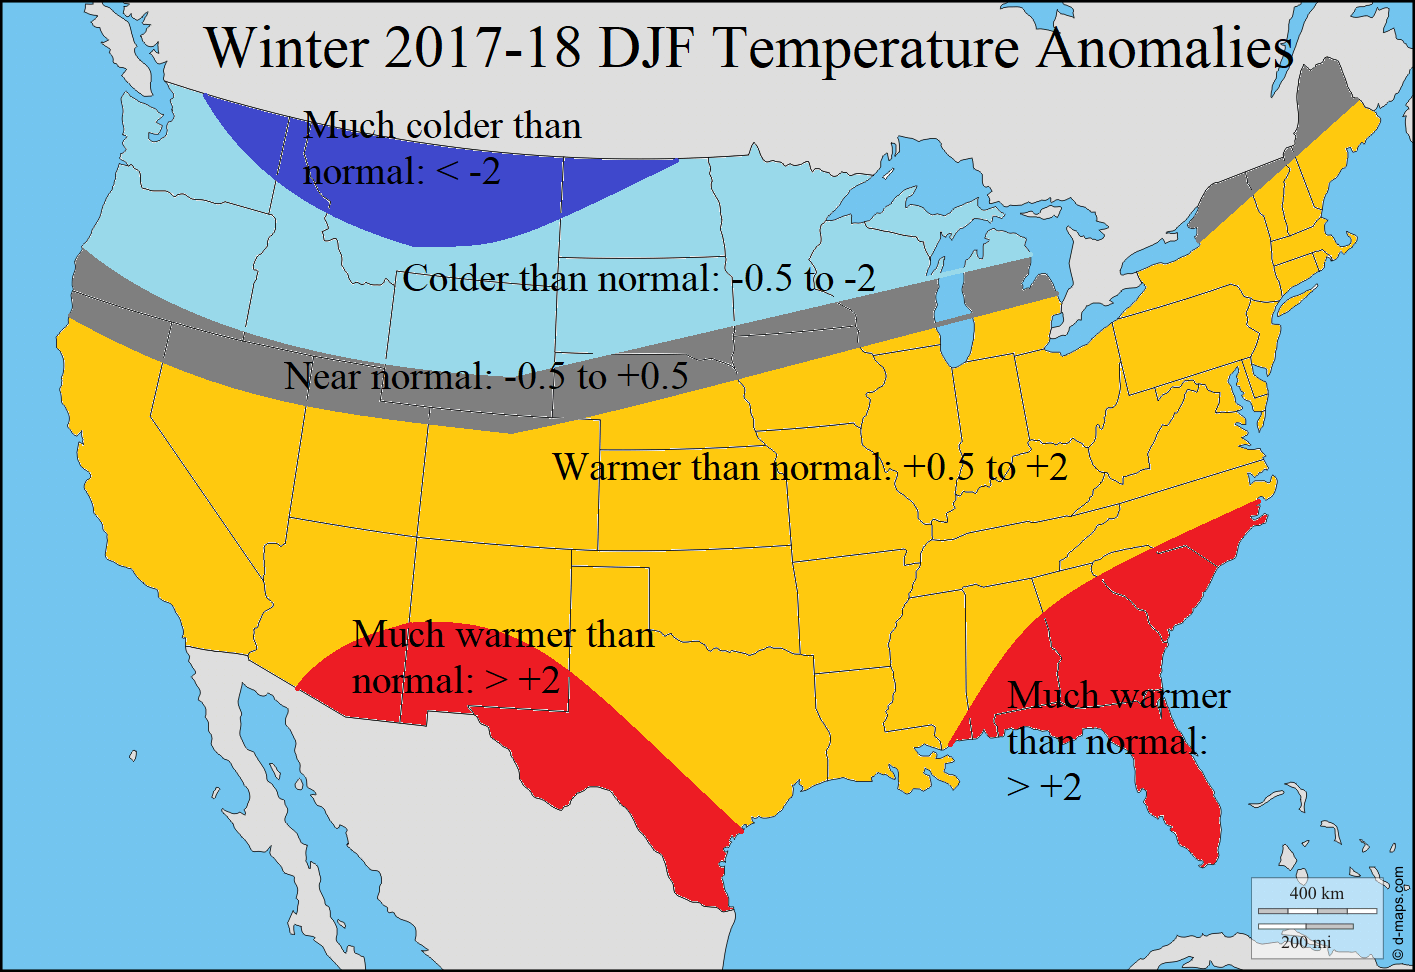 WINTER DJF FORECAST TEMPS